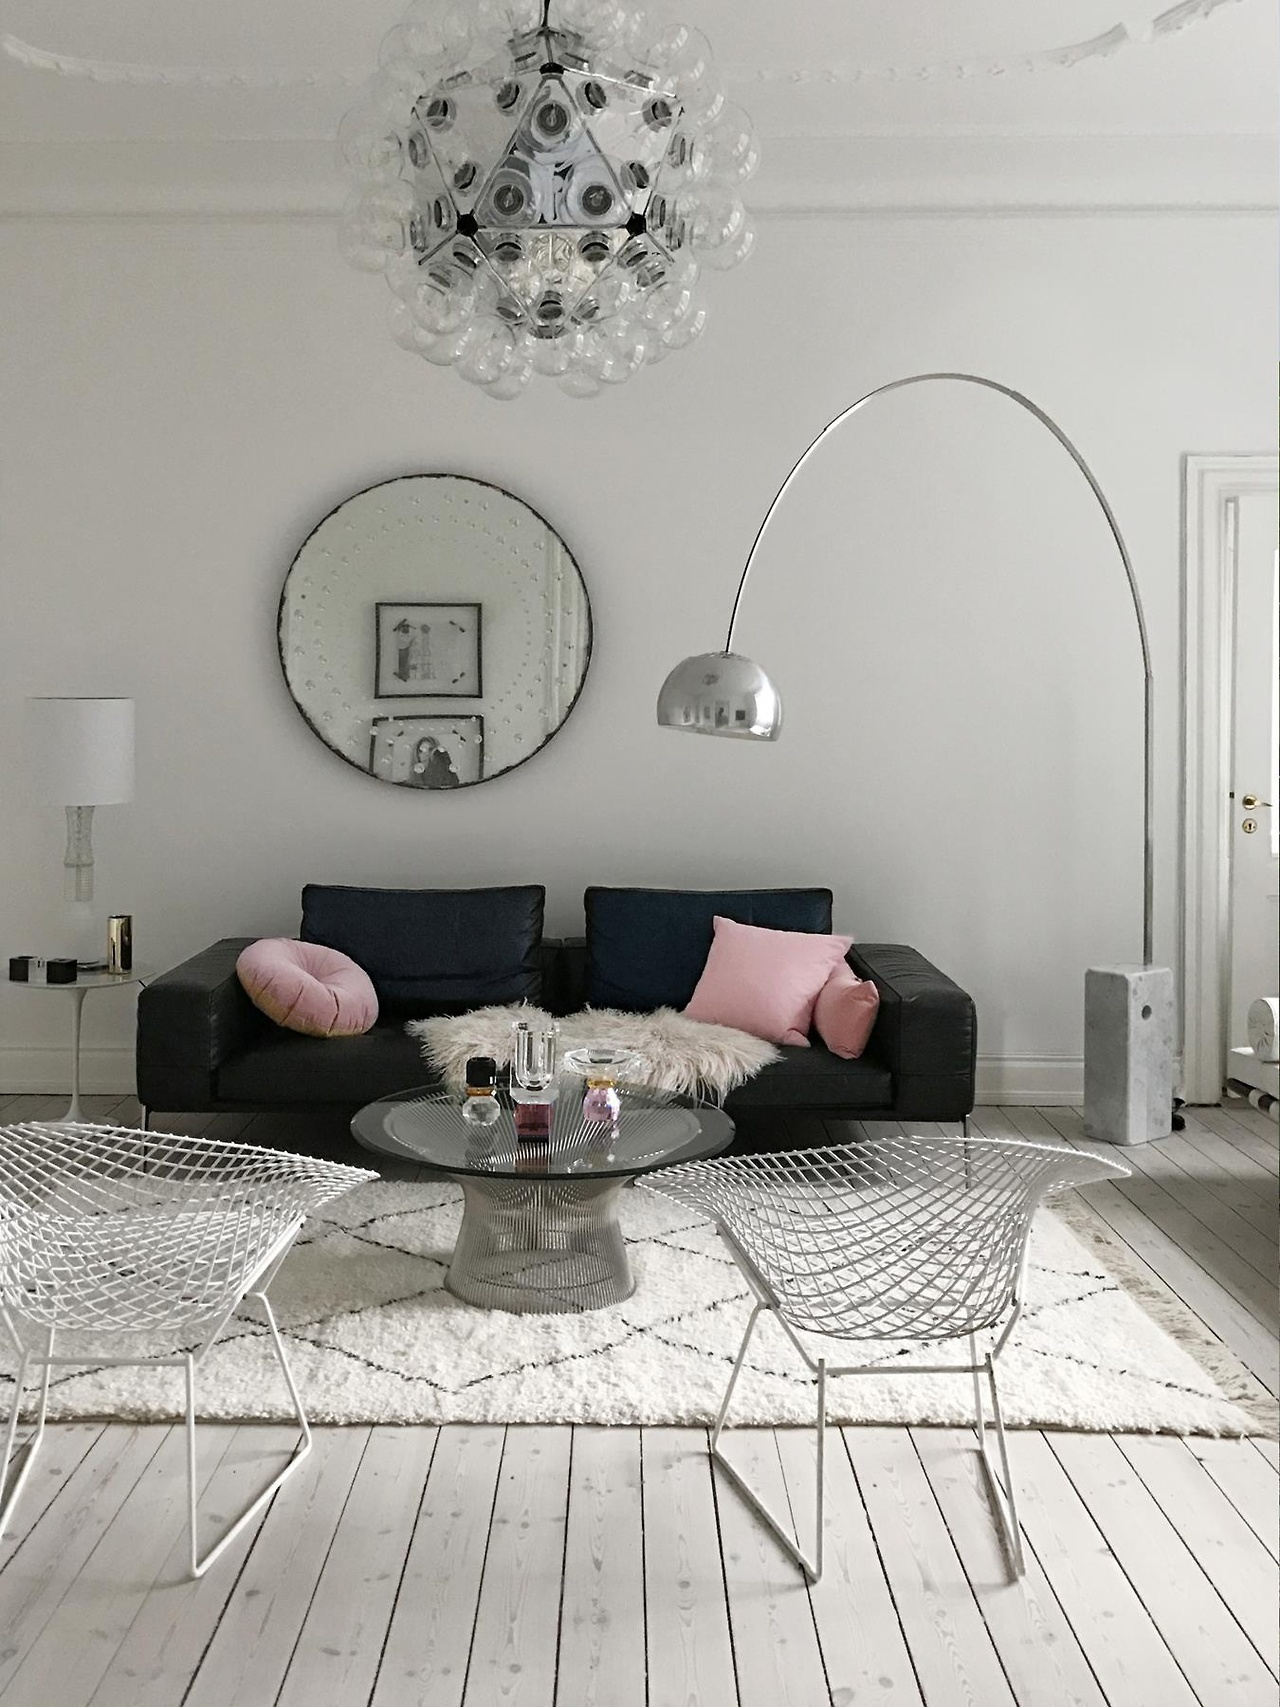 Annika von holdt dreamy copenhagen home project fairytale for Interior design agency copenhagen